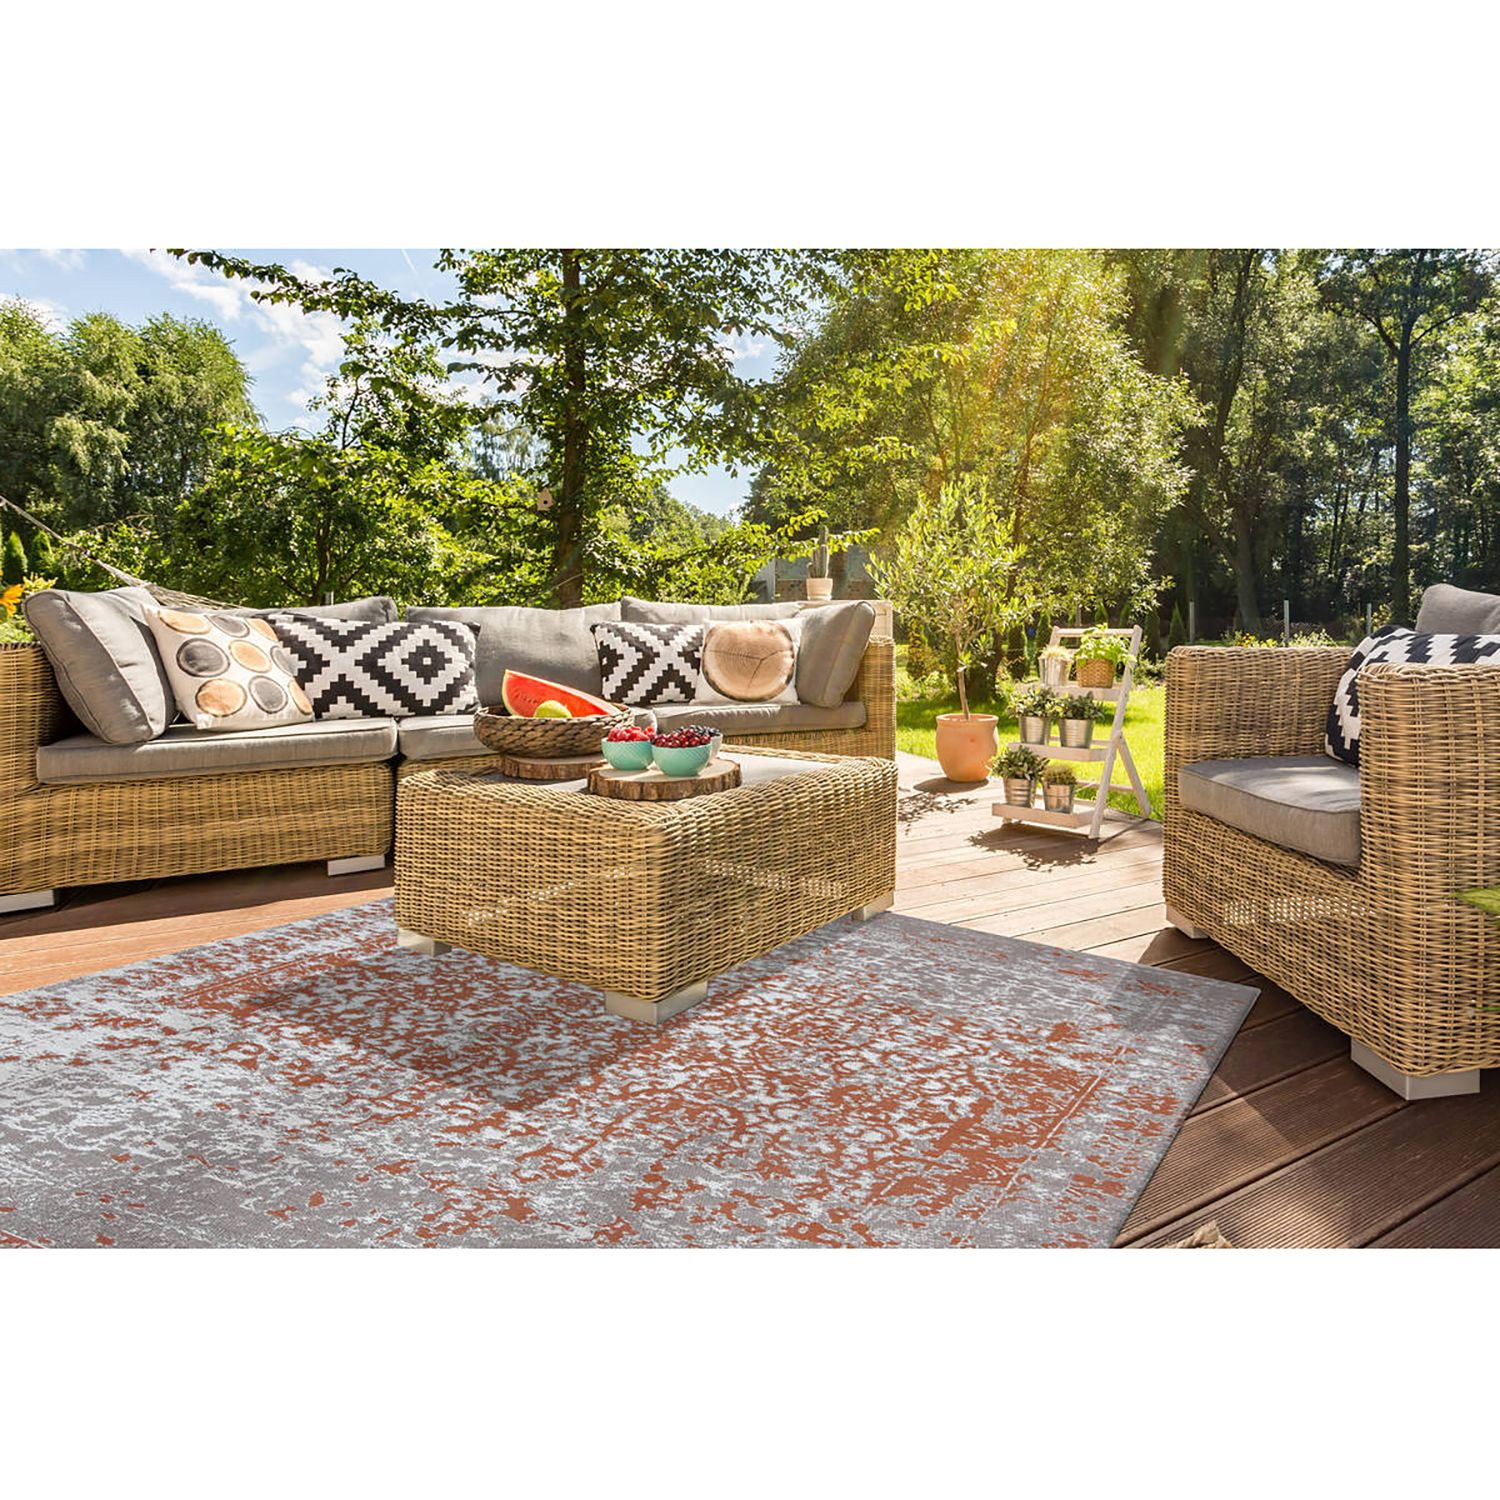 home24 In-/Outdoorteppich Sunny 310